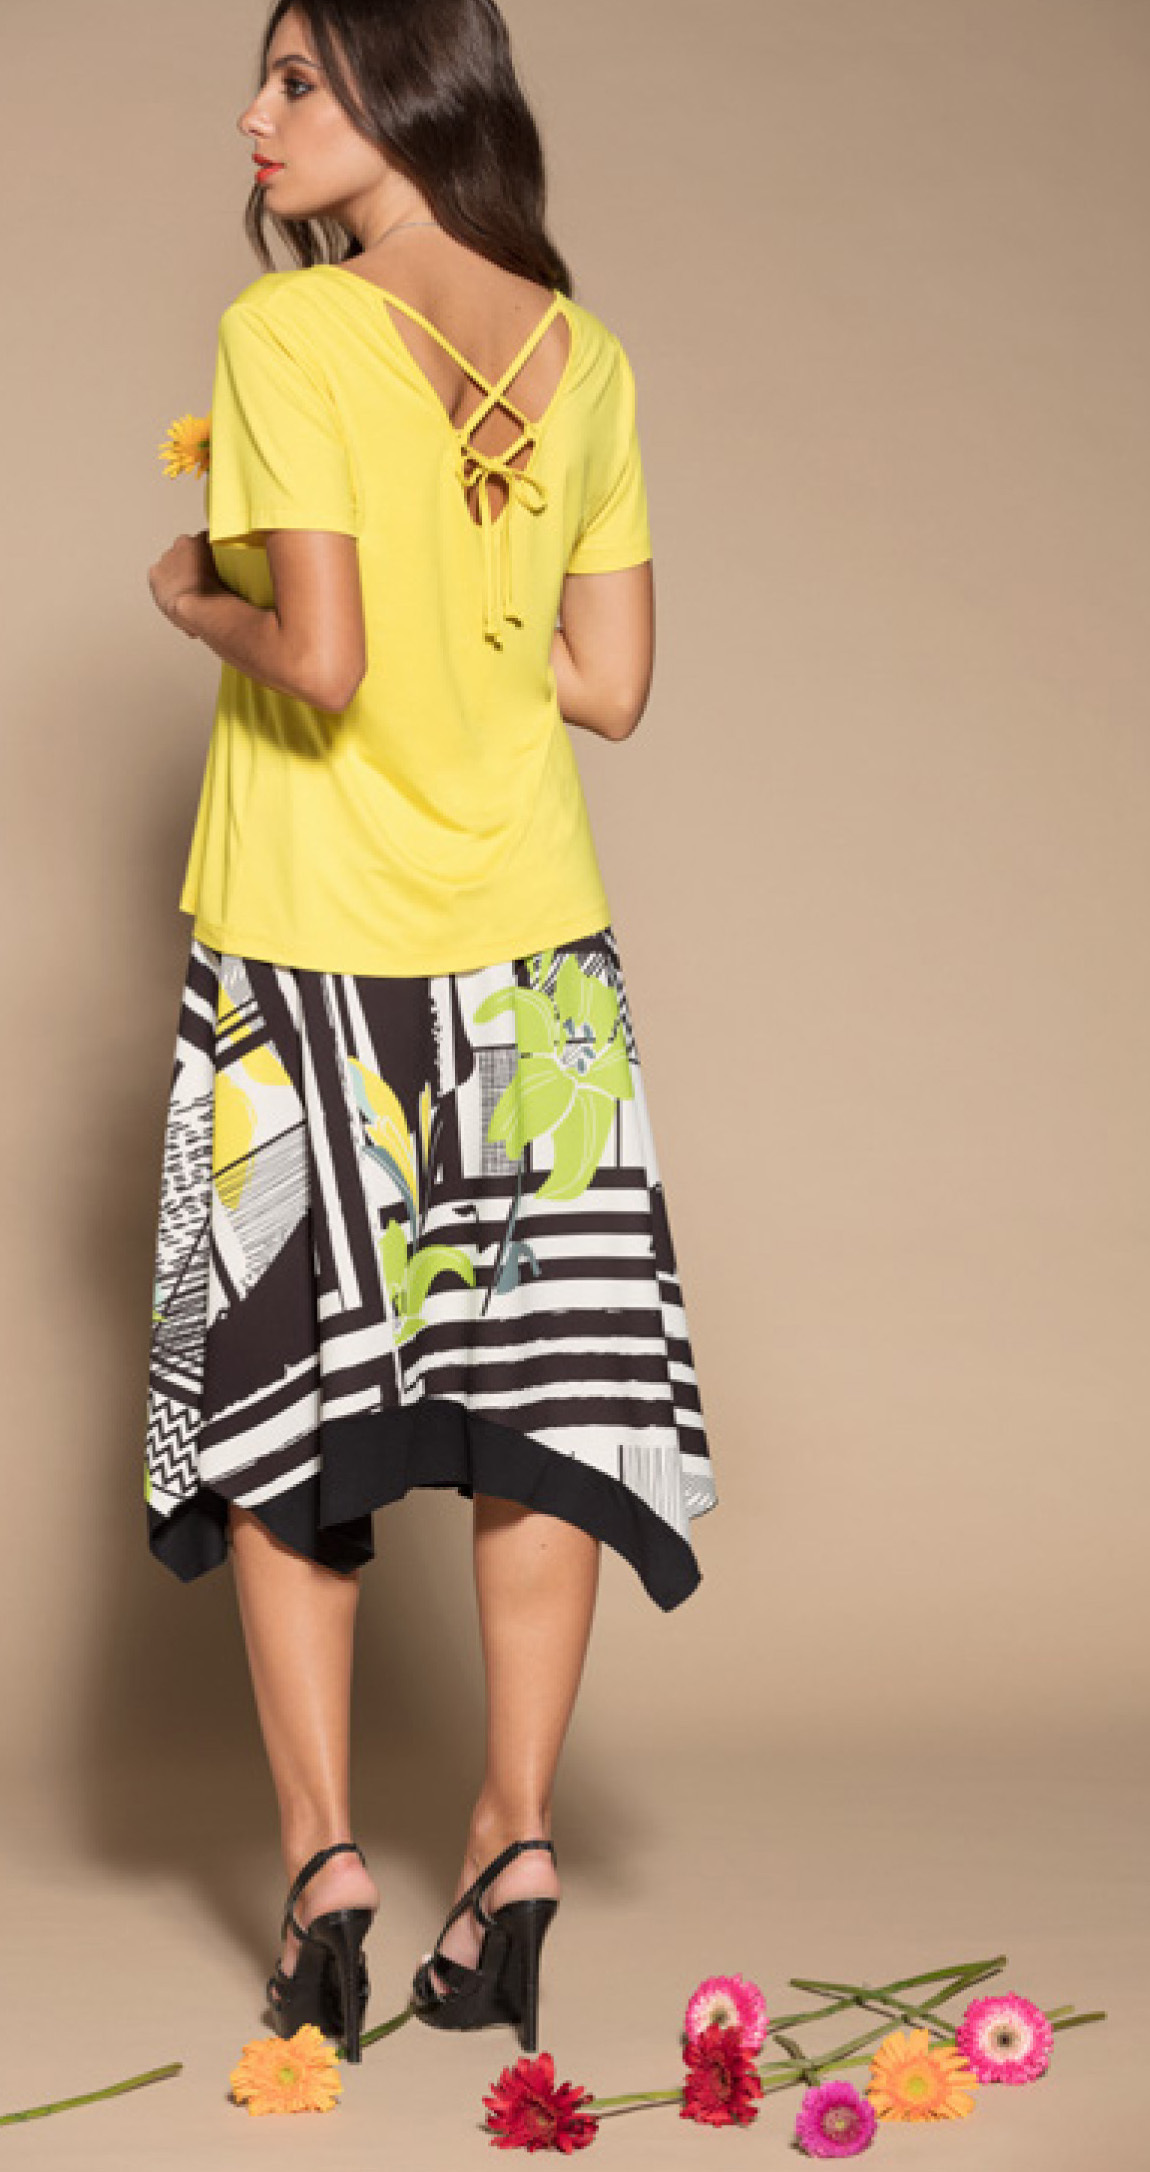 Maloka: Lemon Lime Marble High Waisted Asymmetrical Midi Skirt